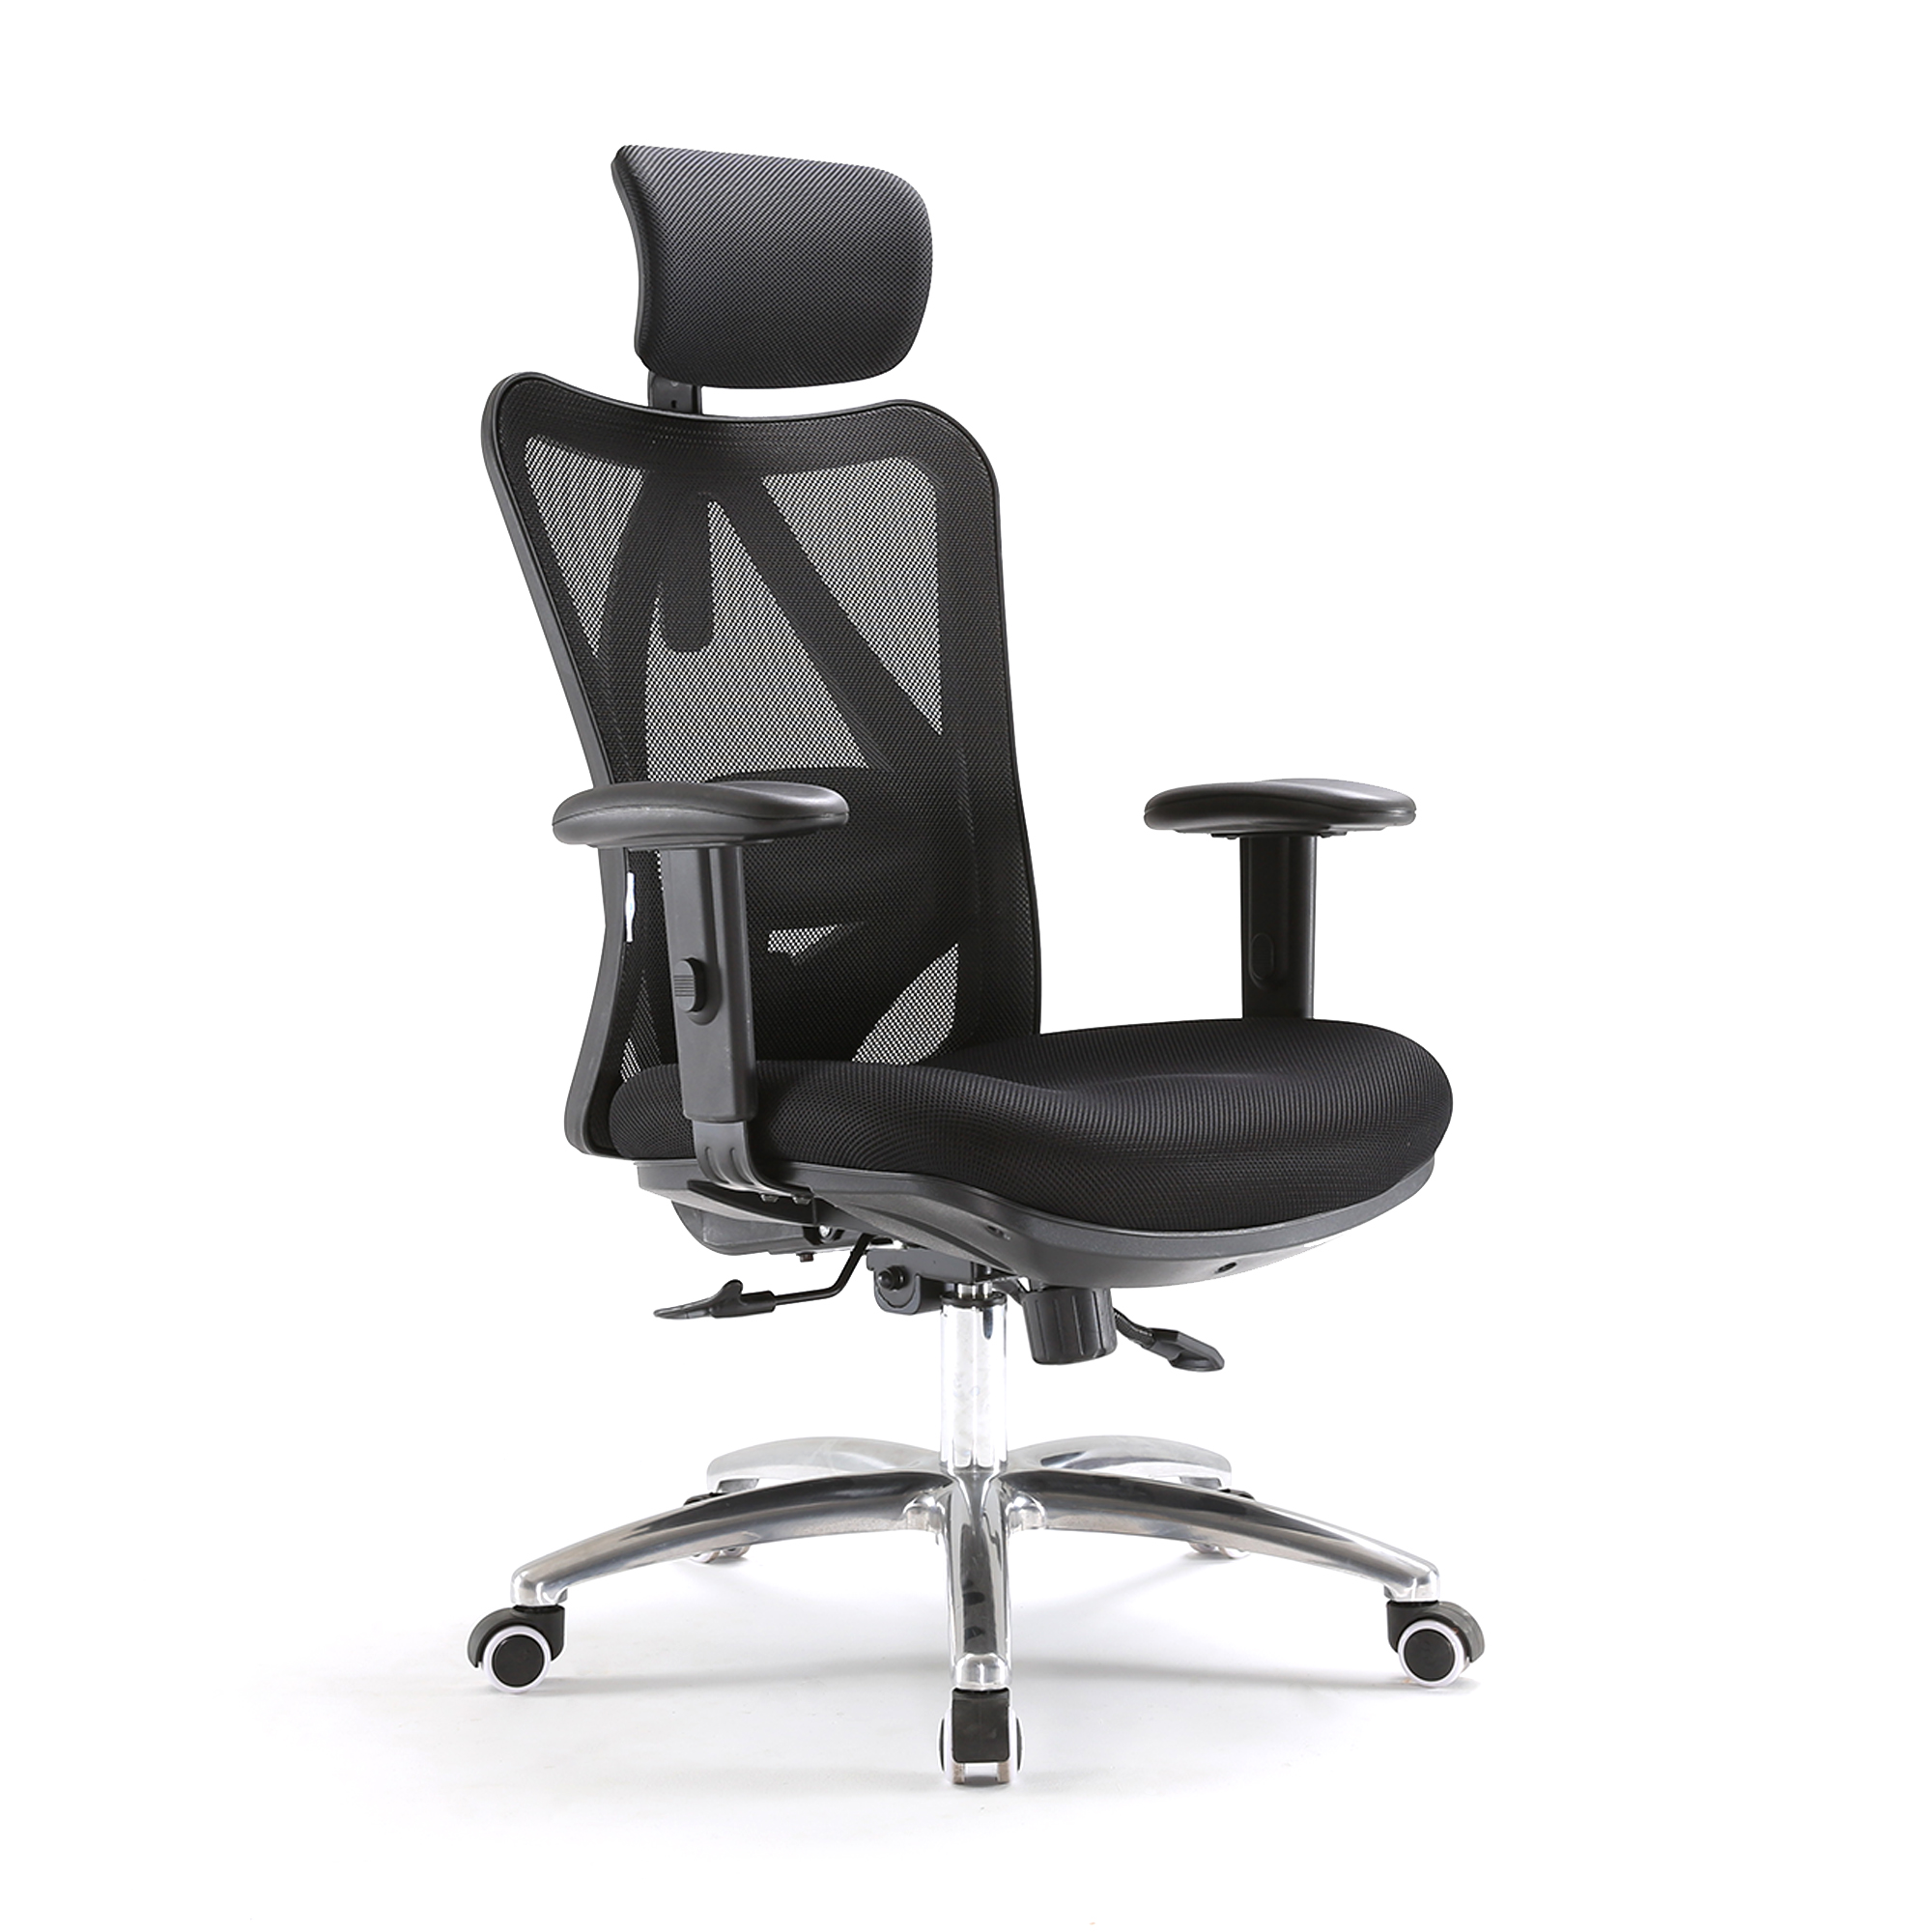 Caesar Hardware Ergonomic Adjustable Swivel Home Office